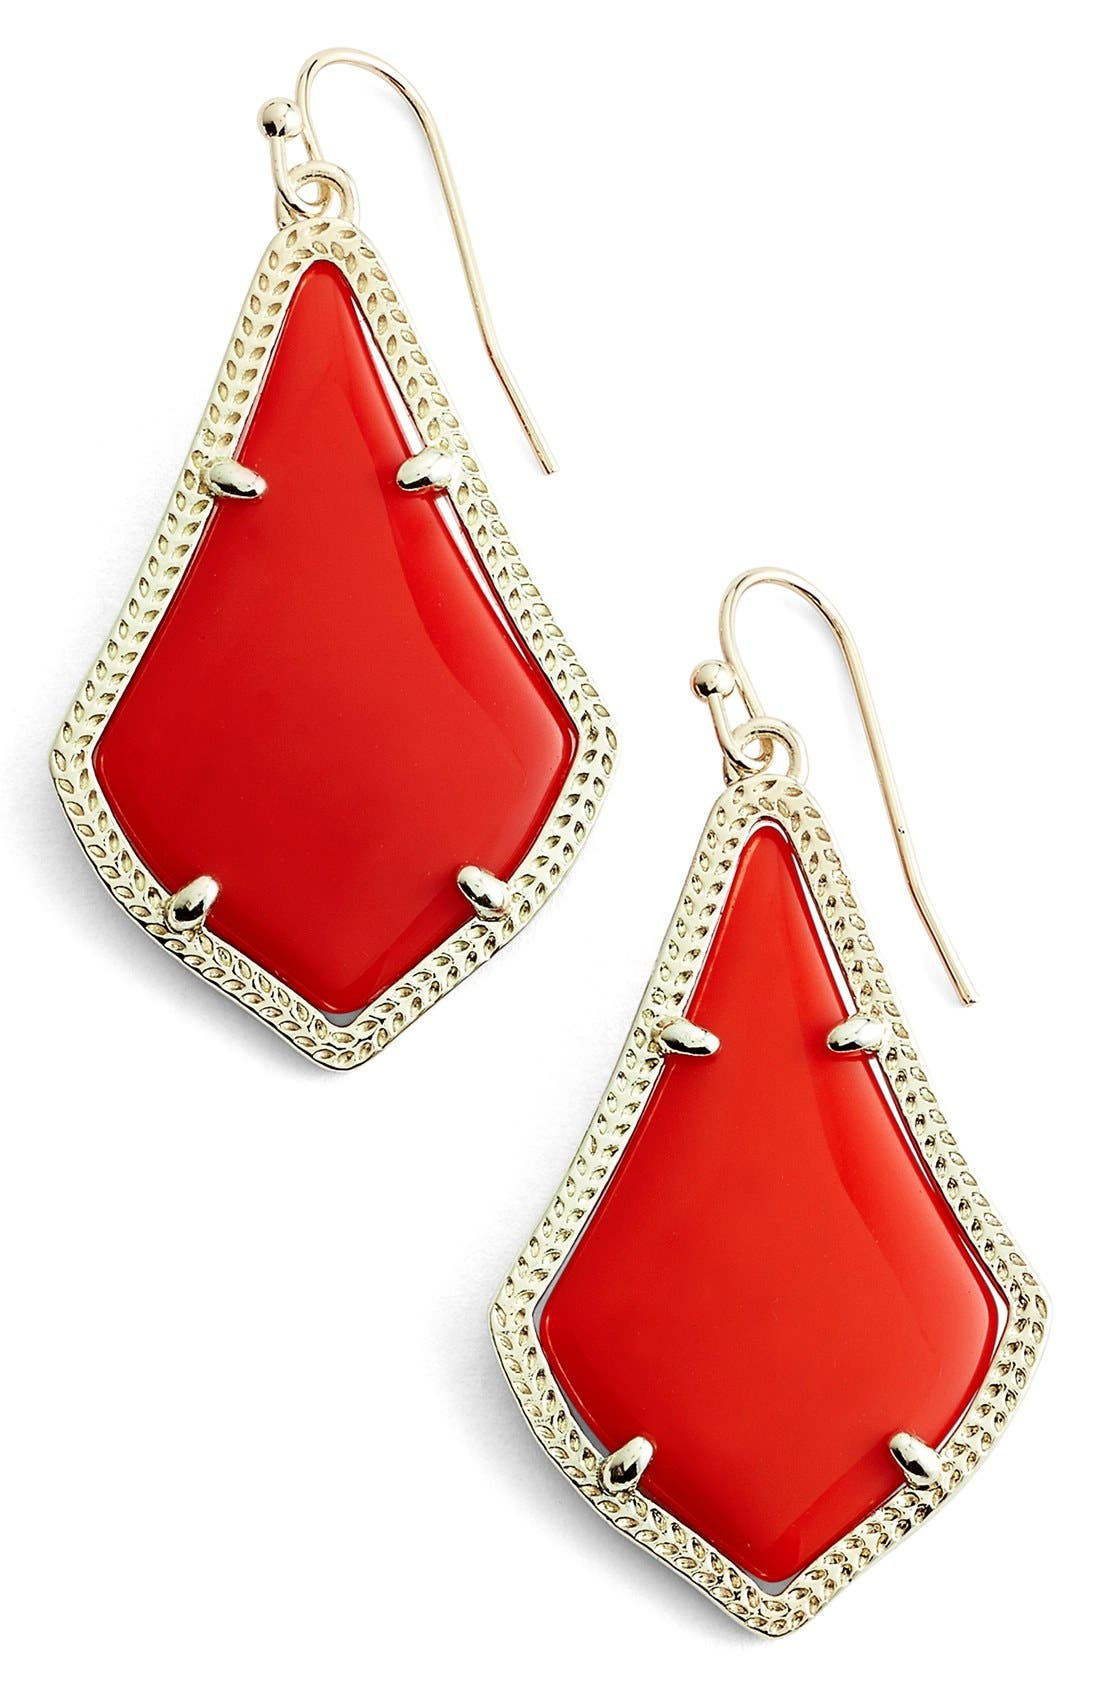 Alex Drop Earrings,                             Main thumbnail 1, color,                             Bright Red Opaque Glass/ Gold